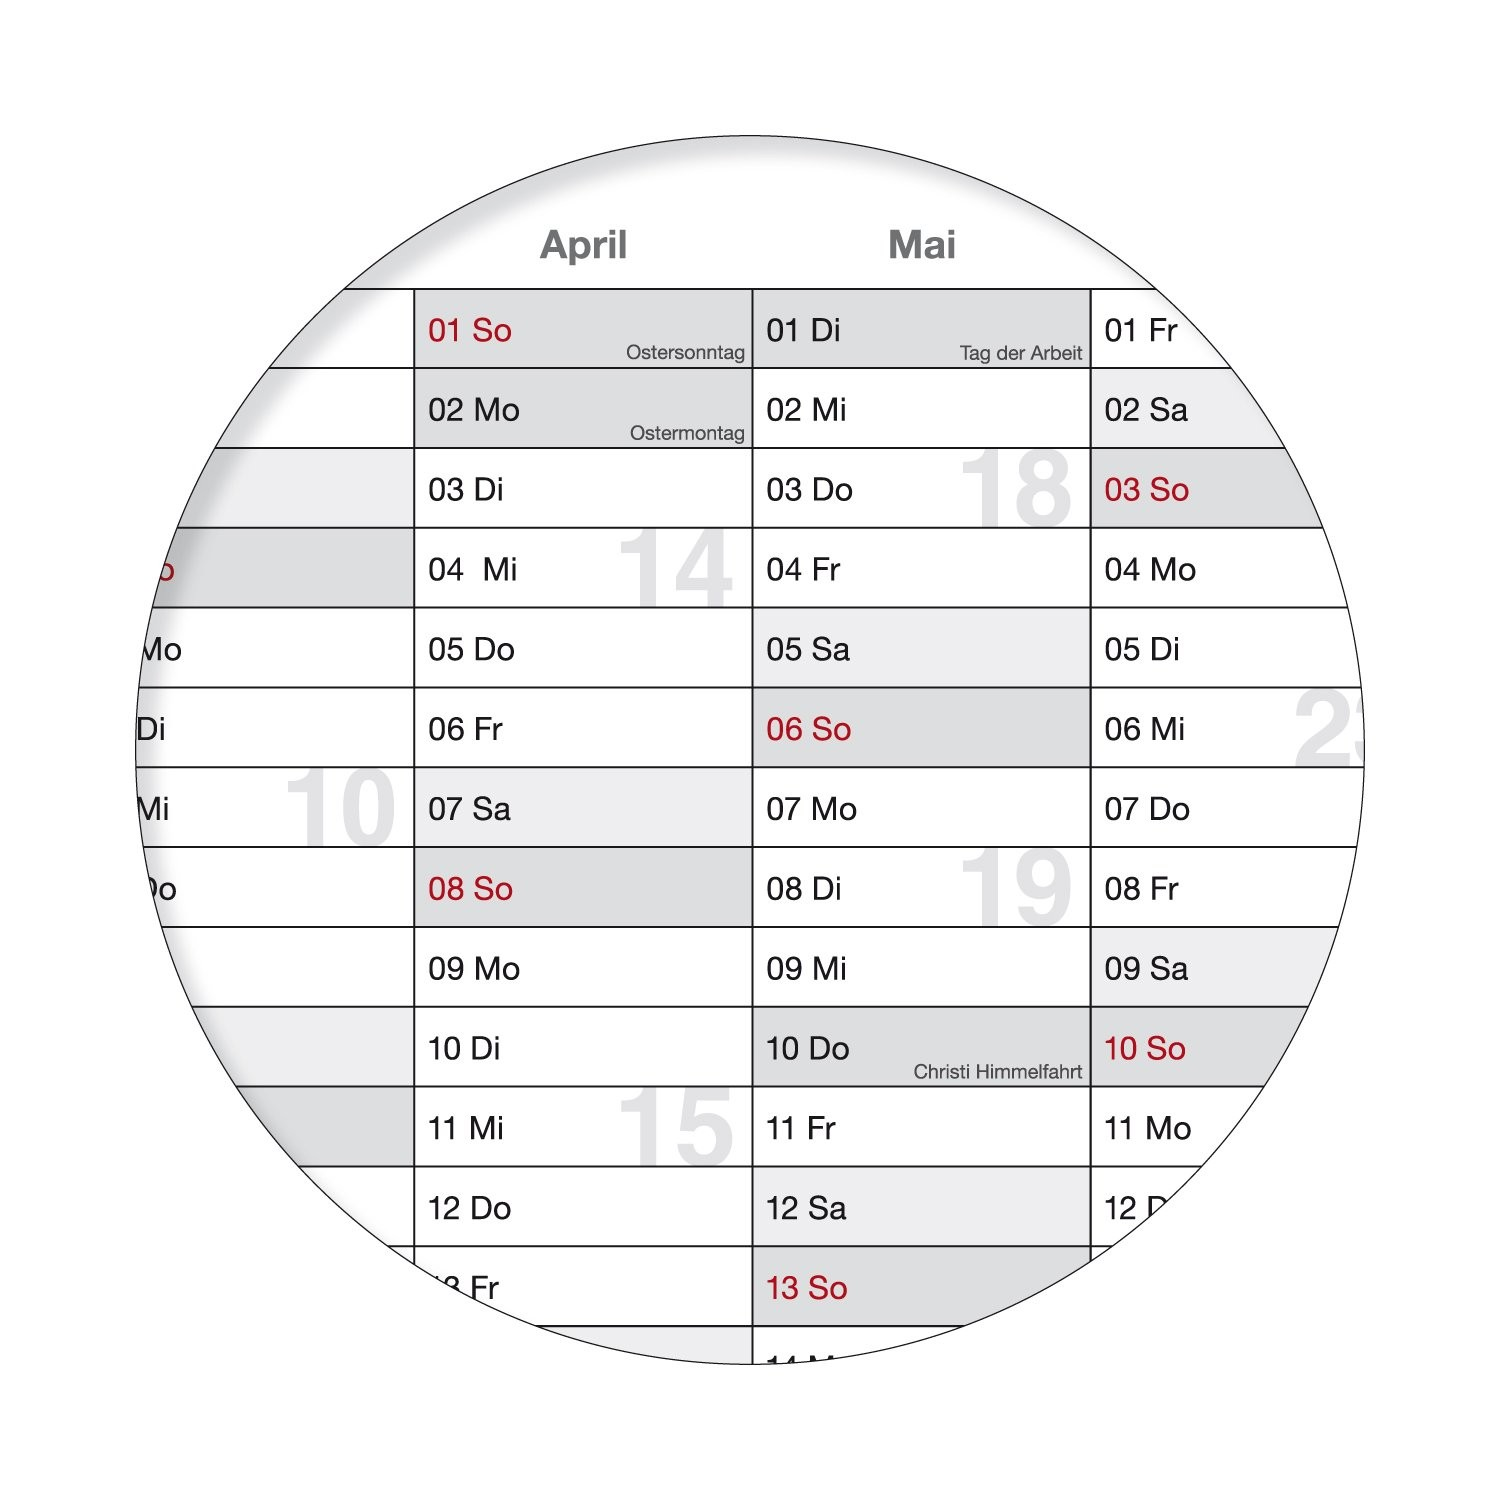 Calendario anual de pared con d­as festivos DIN A0 blanco y gris